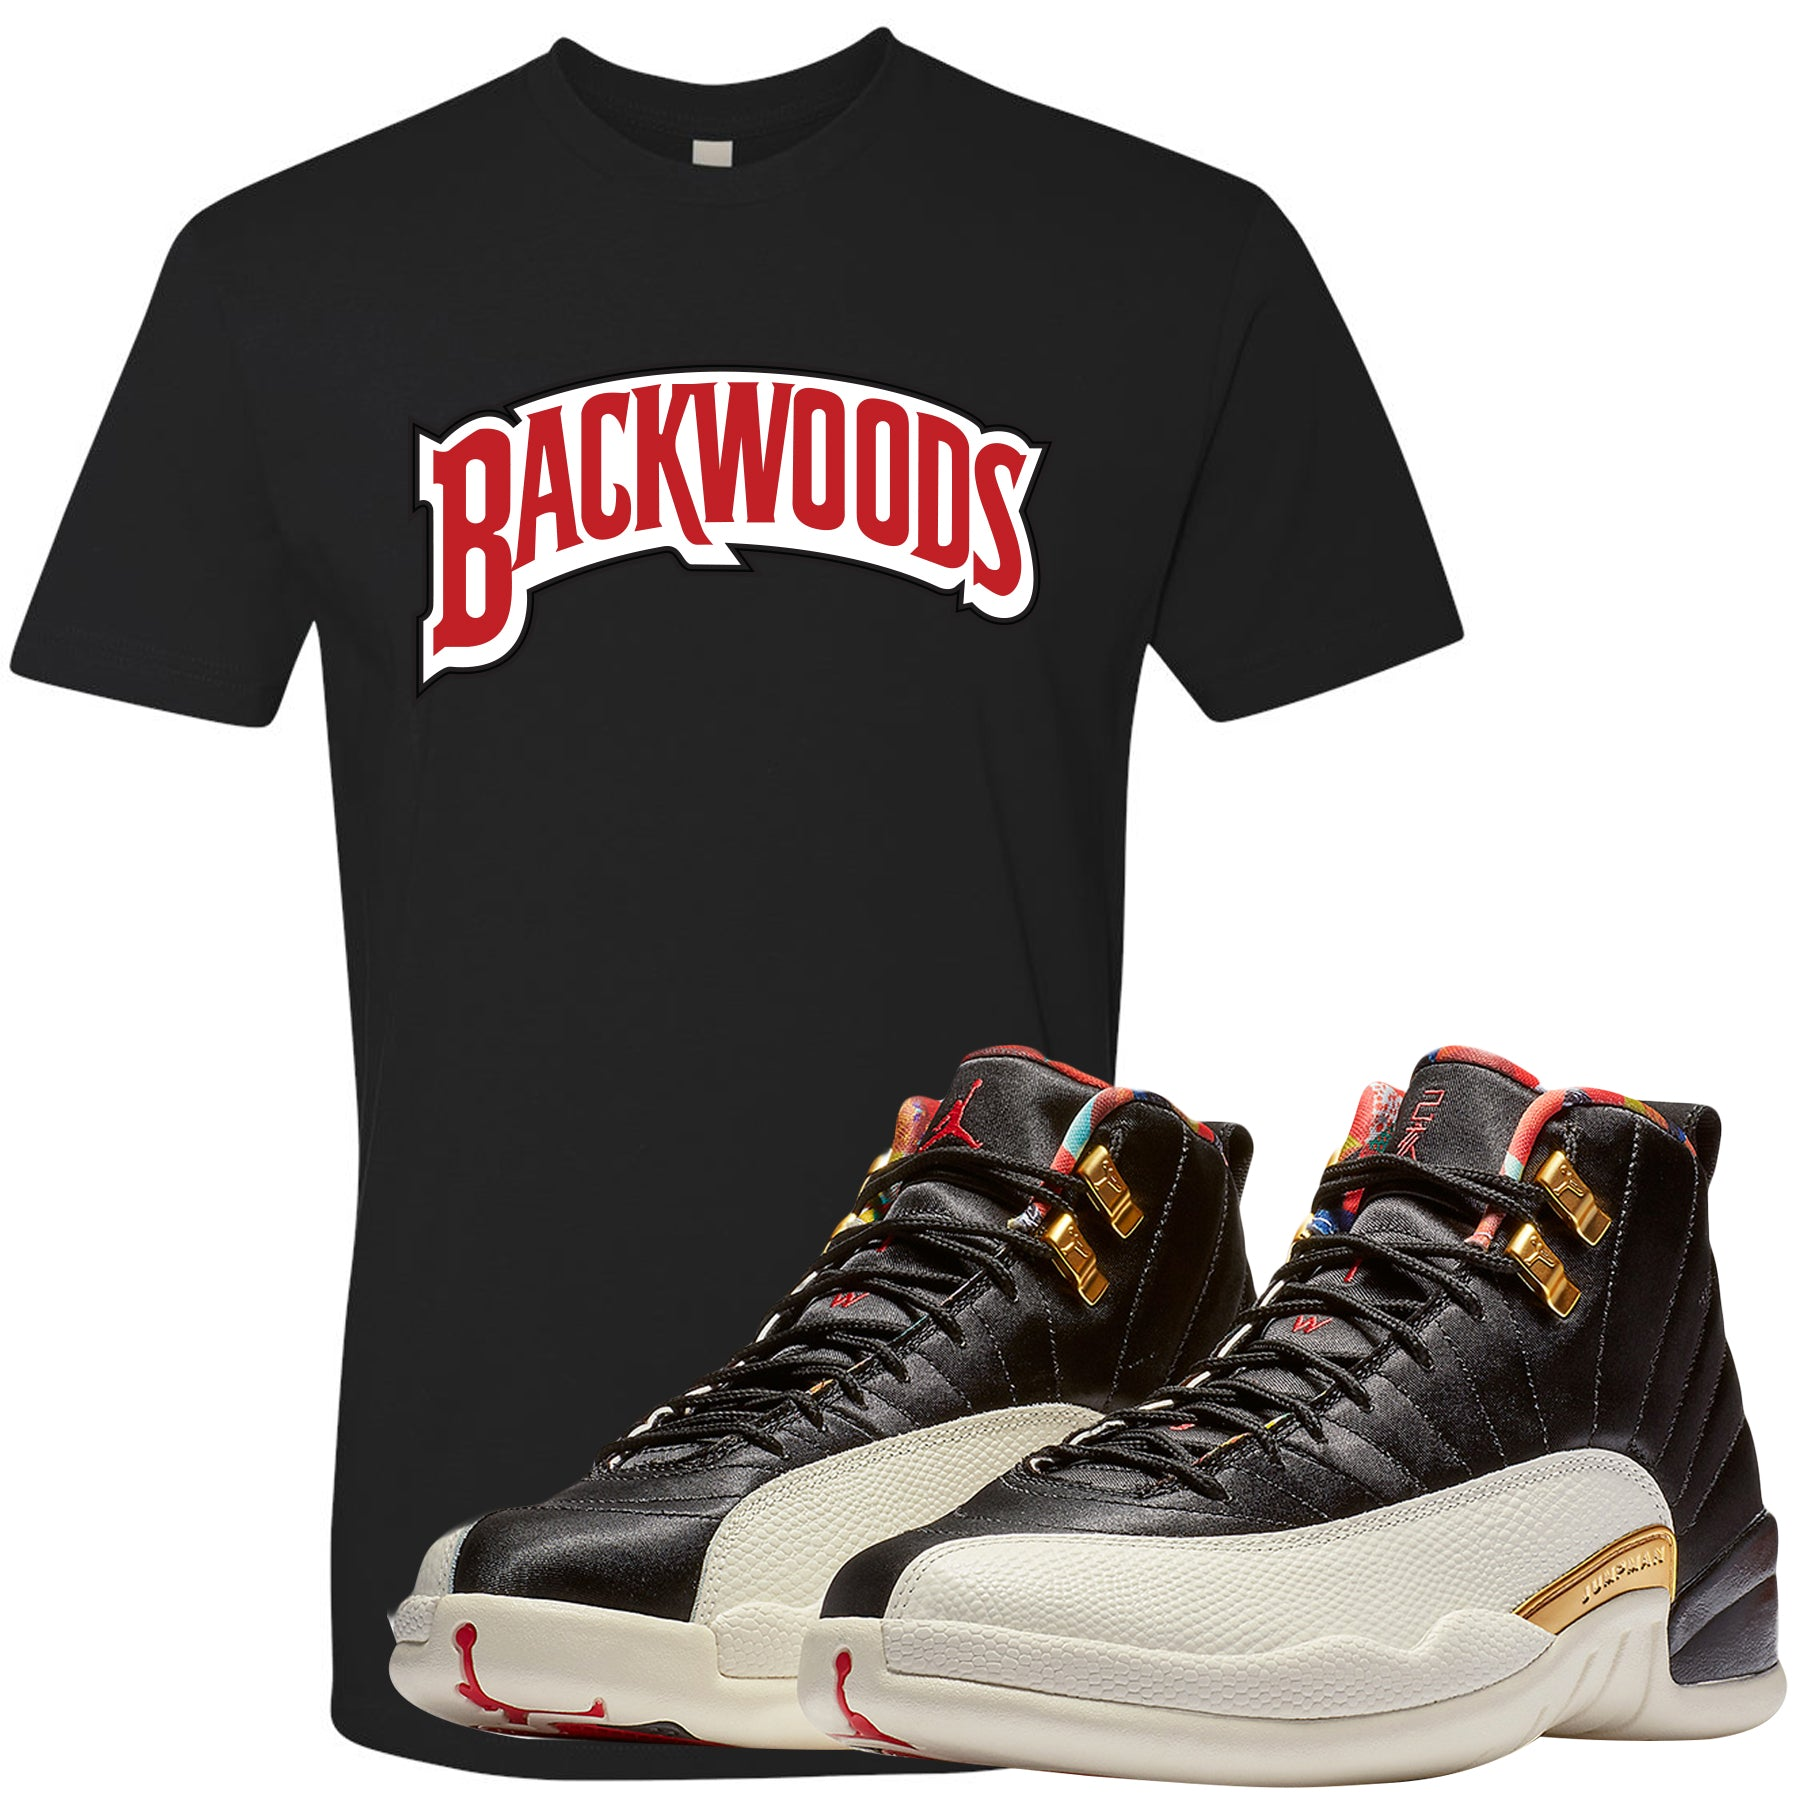 buy popular 124b0 b3ebf Jordan 12 Chinese New Year Sneaker Matching Backwoods Black T-Shirt